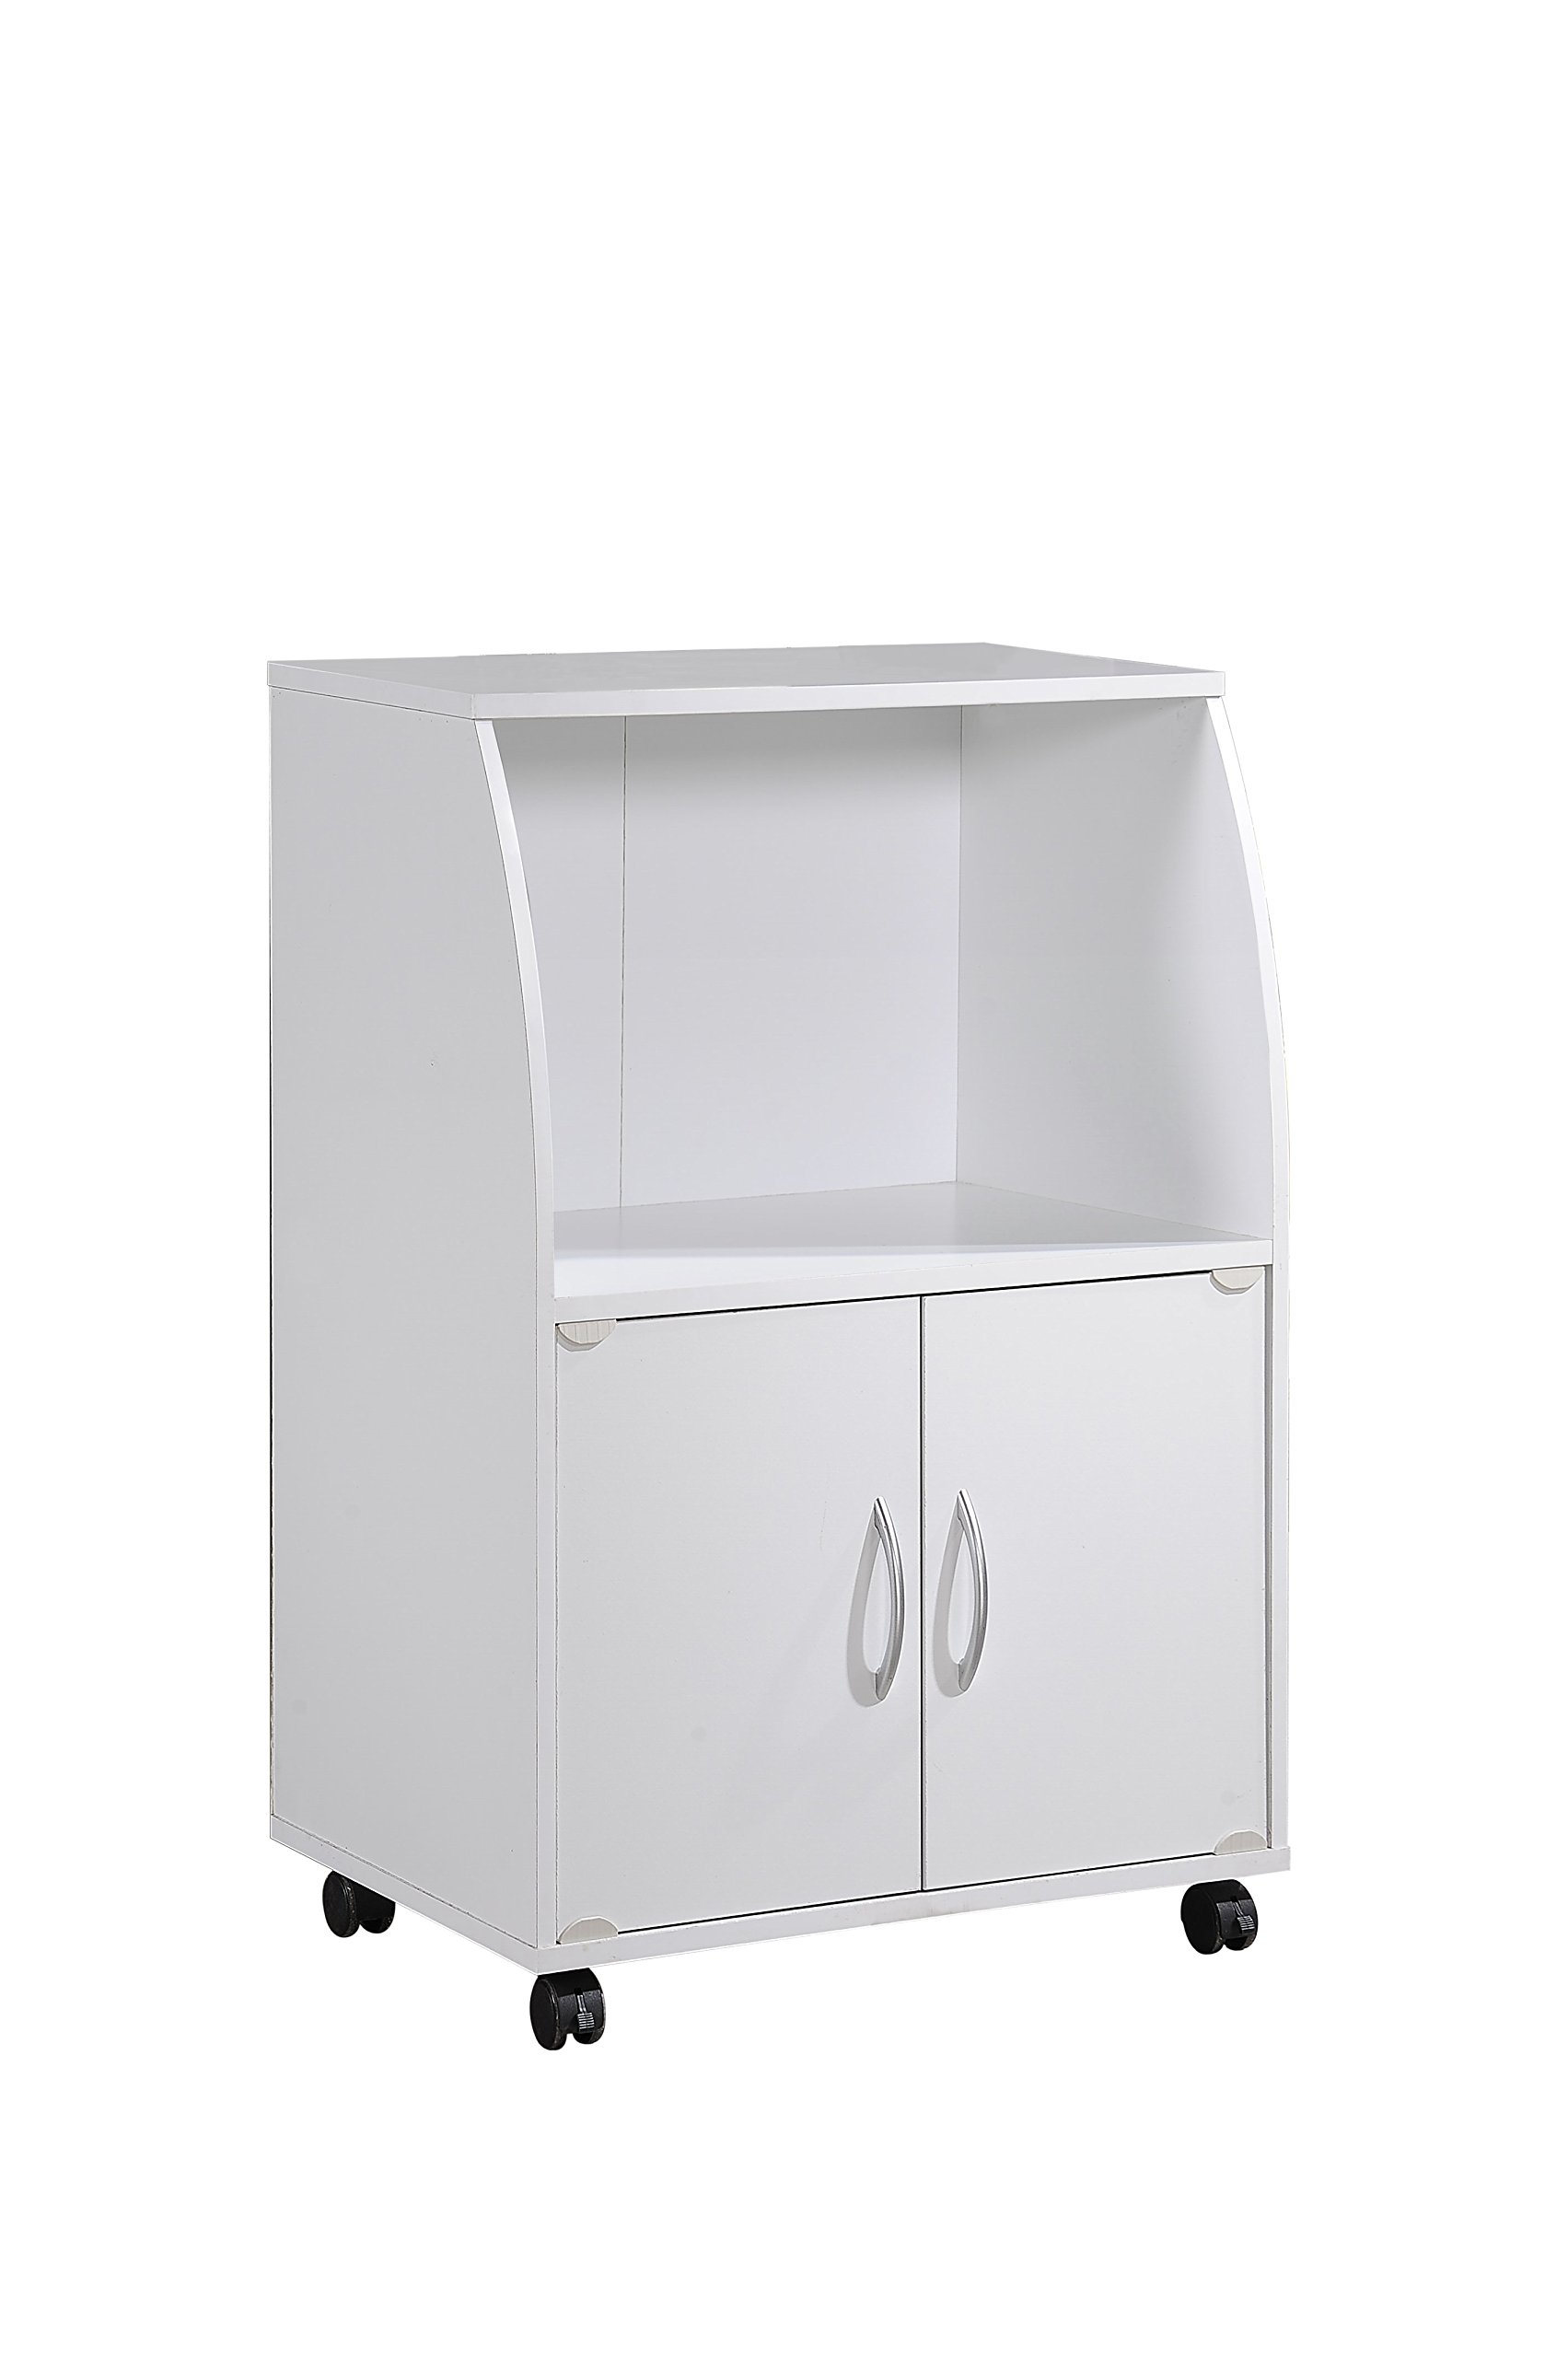 Hodedah Mini Microwave Cart with Two Doors and Shelf for Storage, White by HODEDAH IMPORT